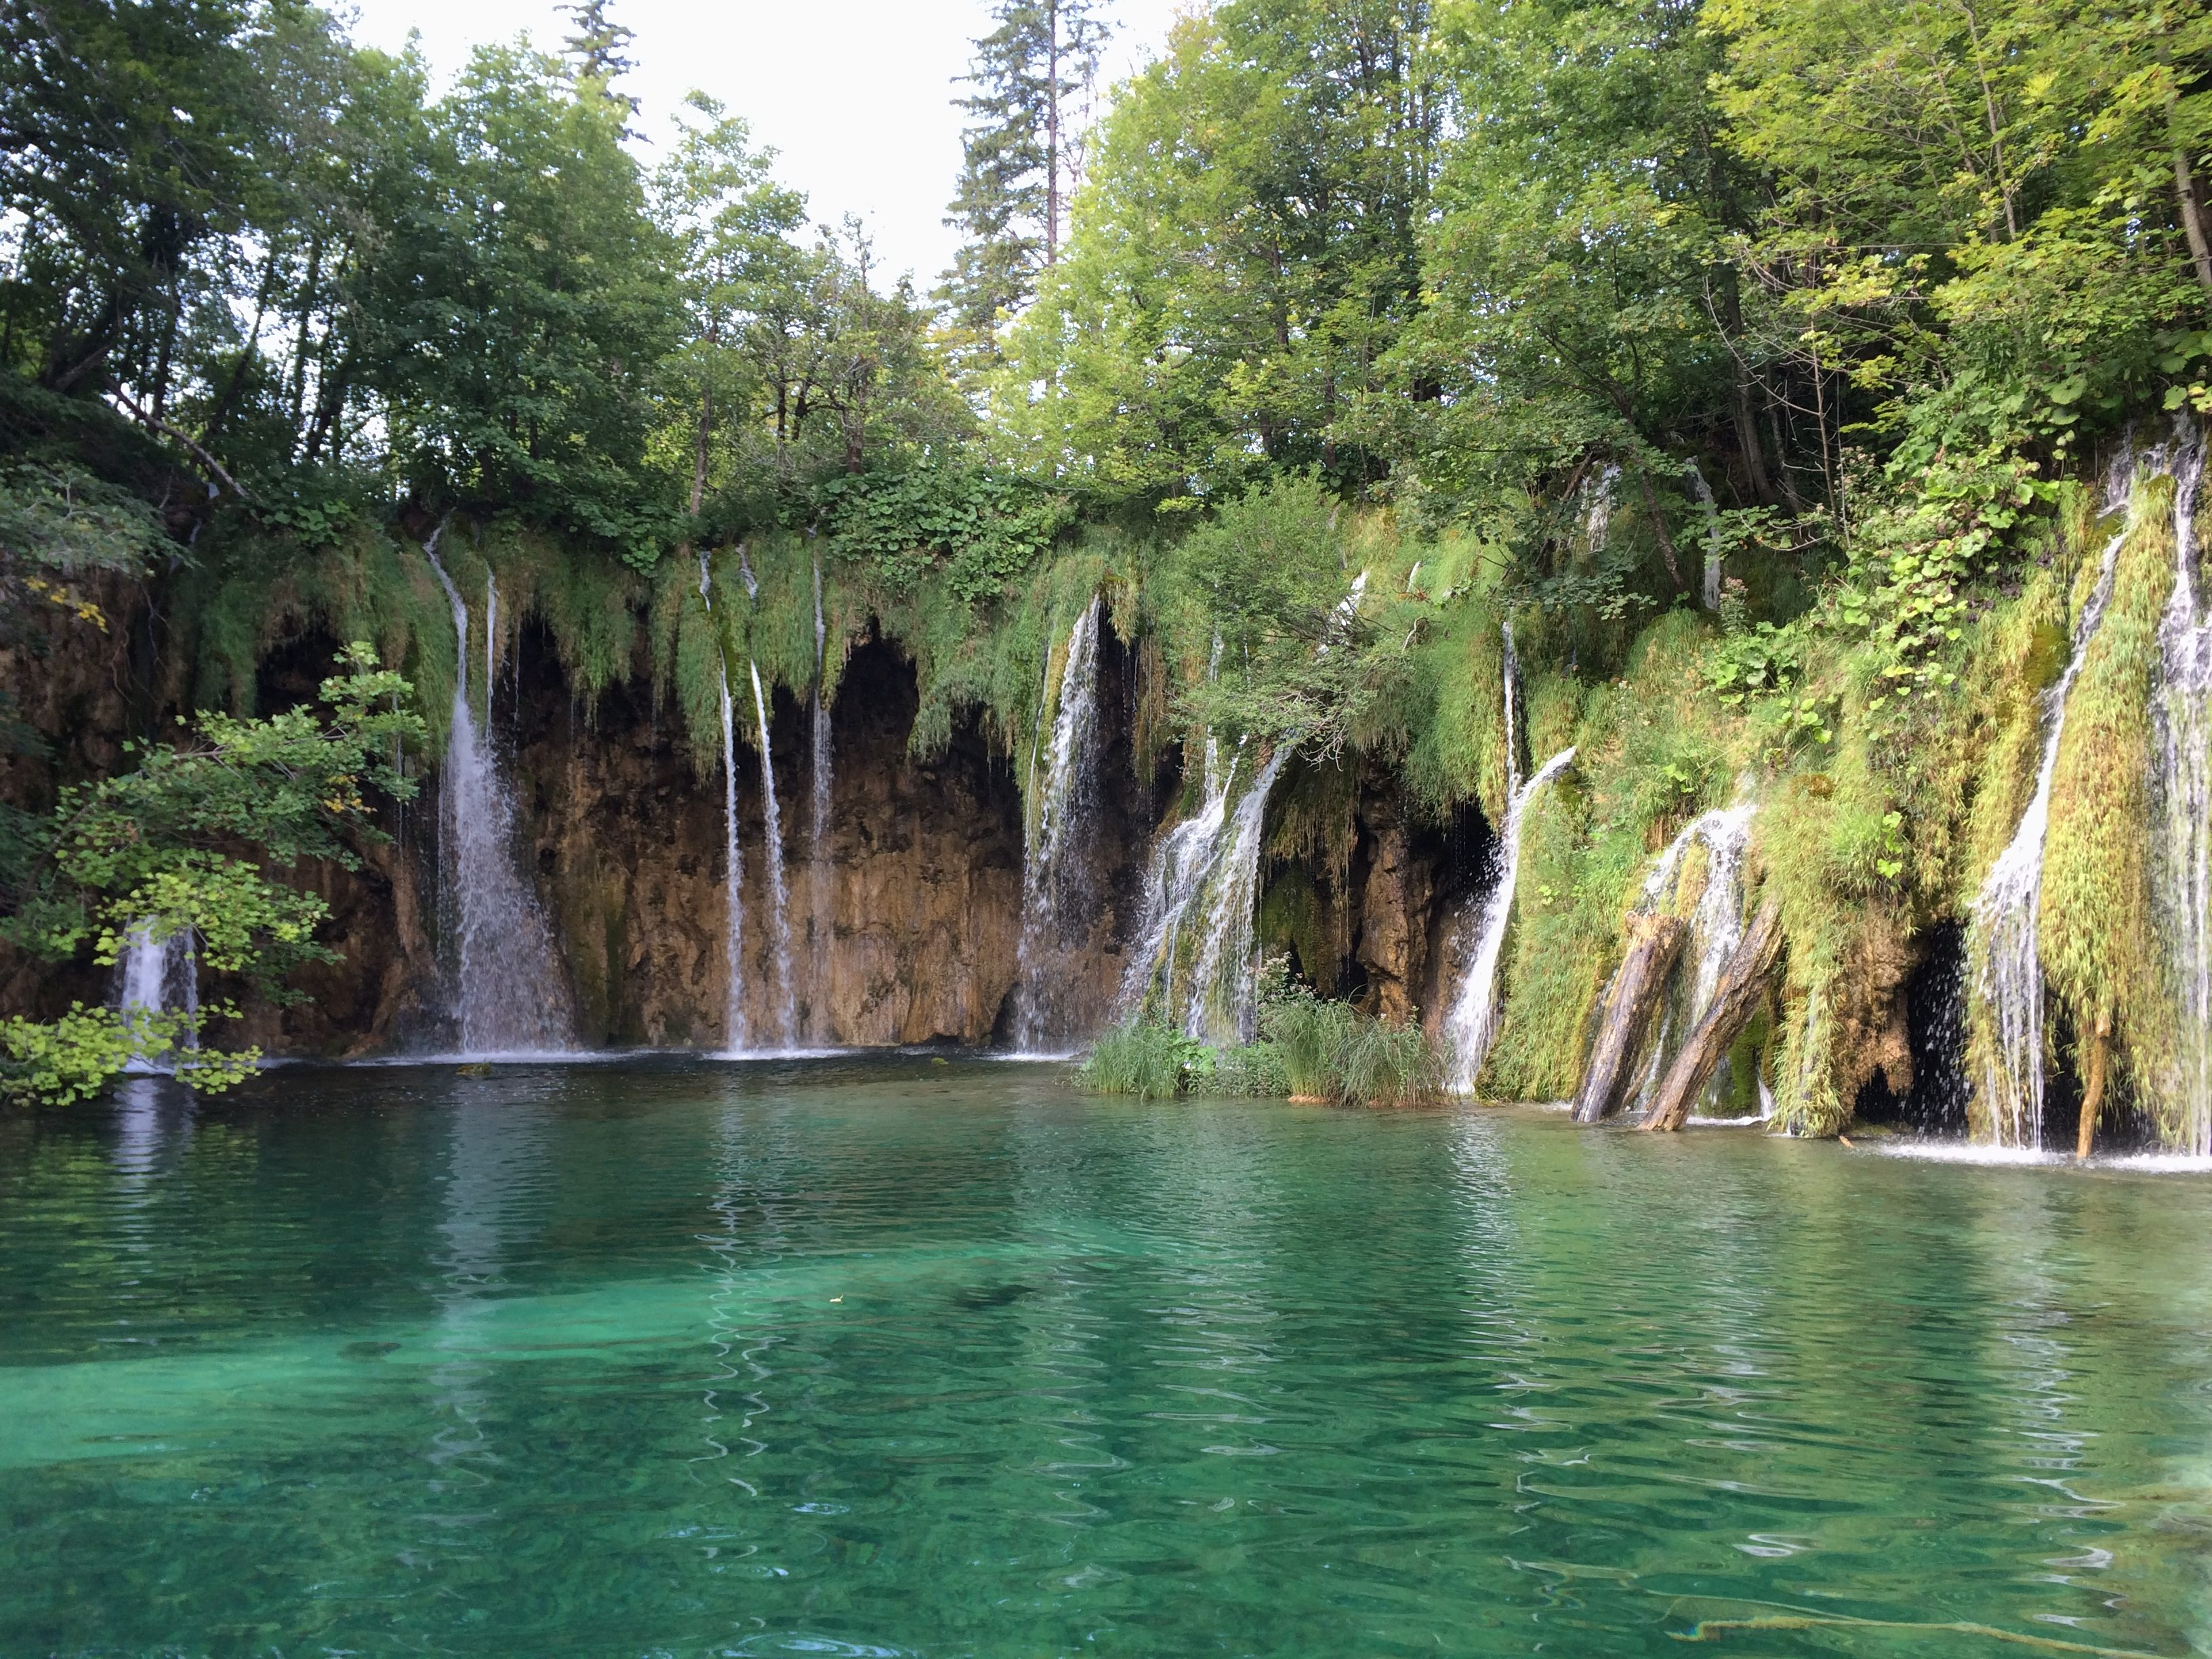 12 ore in Parcul National Lacurile Plitvice